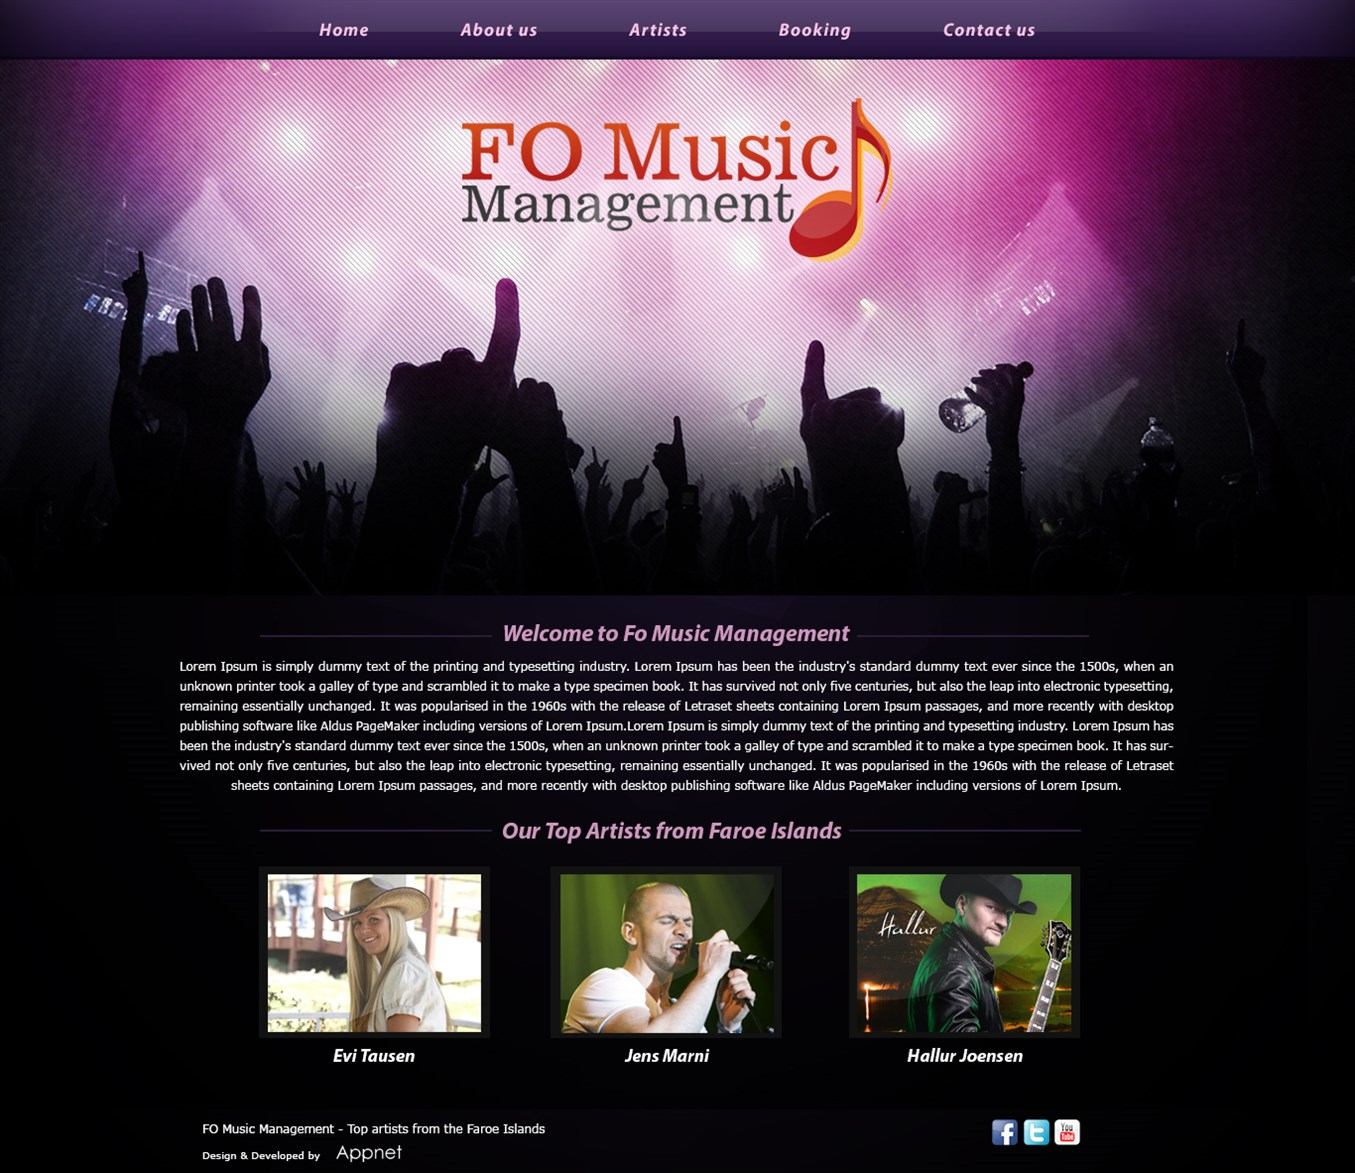 FO Music Management